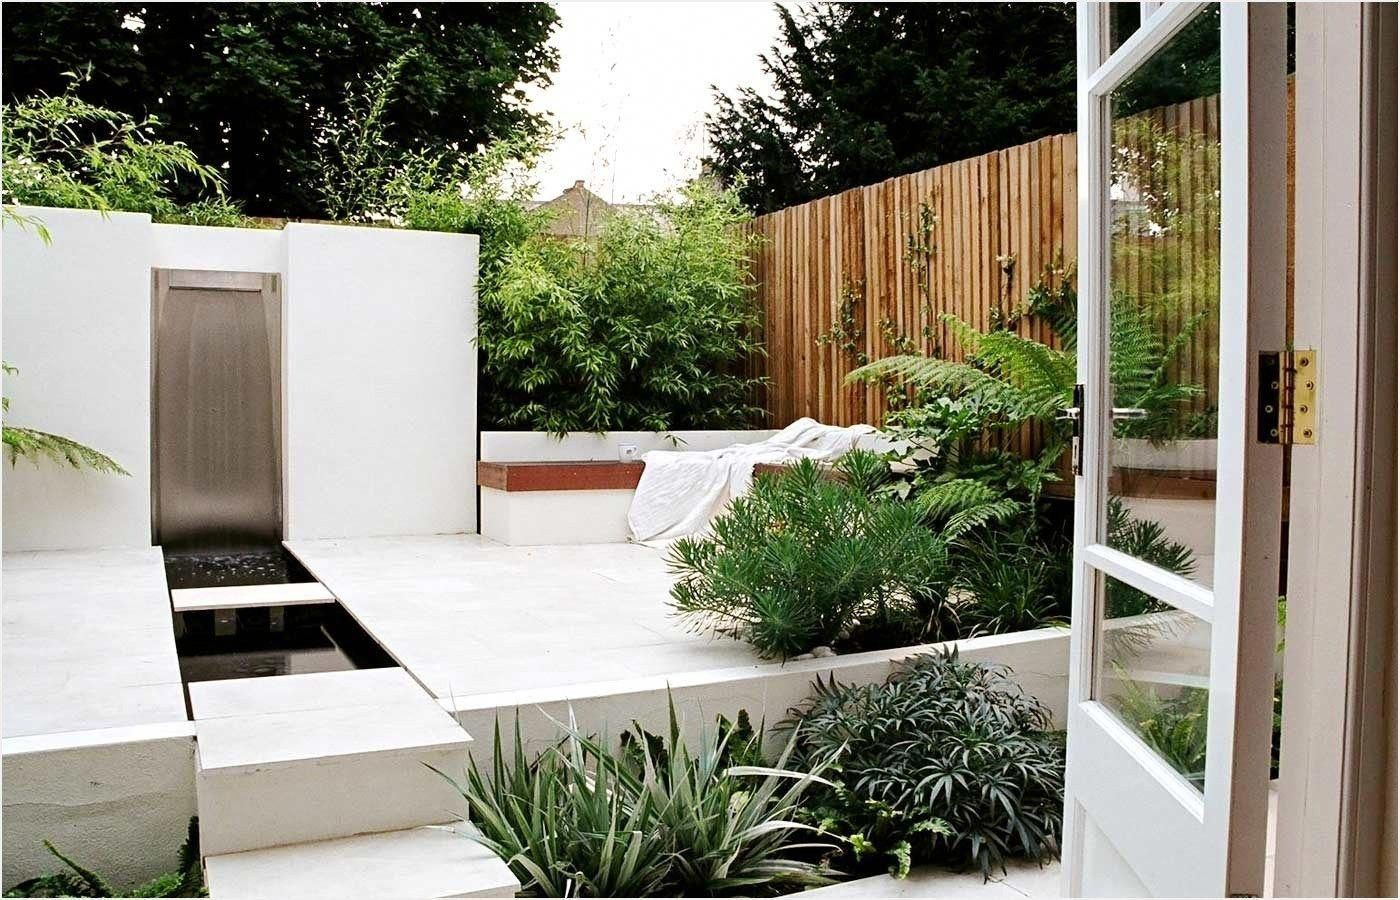 Urban Gardening Think About This Following Advice We Like The Creativeness Of This Creative Small Urban Garden Design Small Urban Garden Urban Garden Design Backyard urban garden design